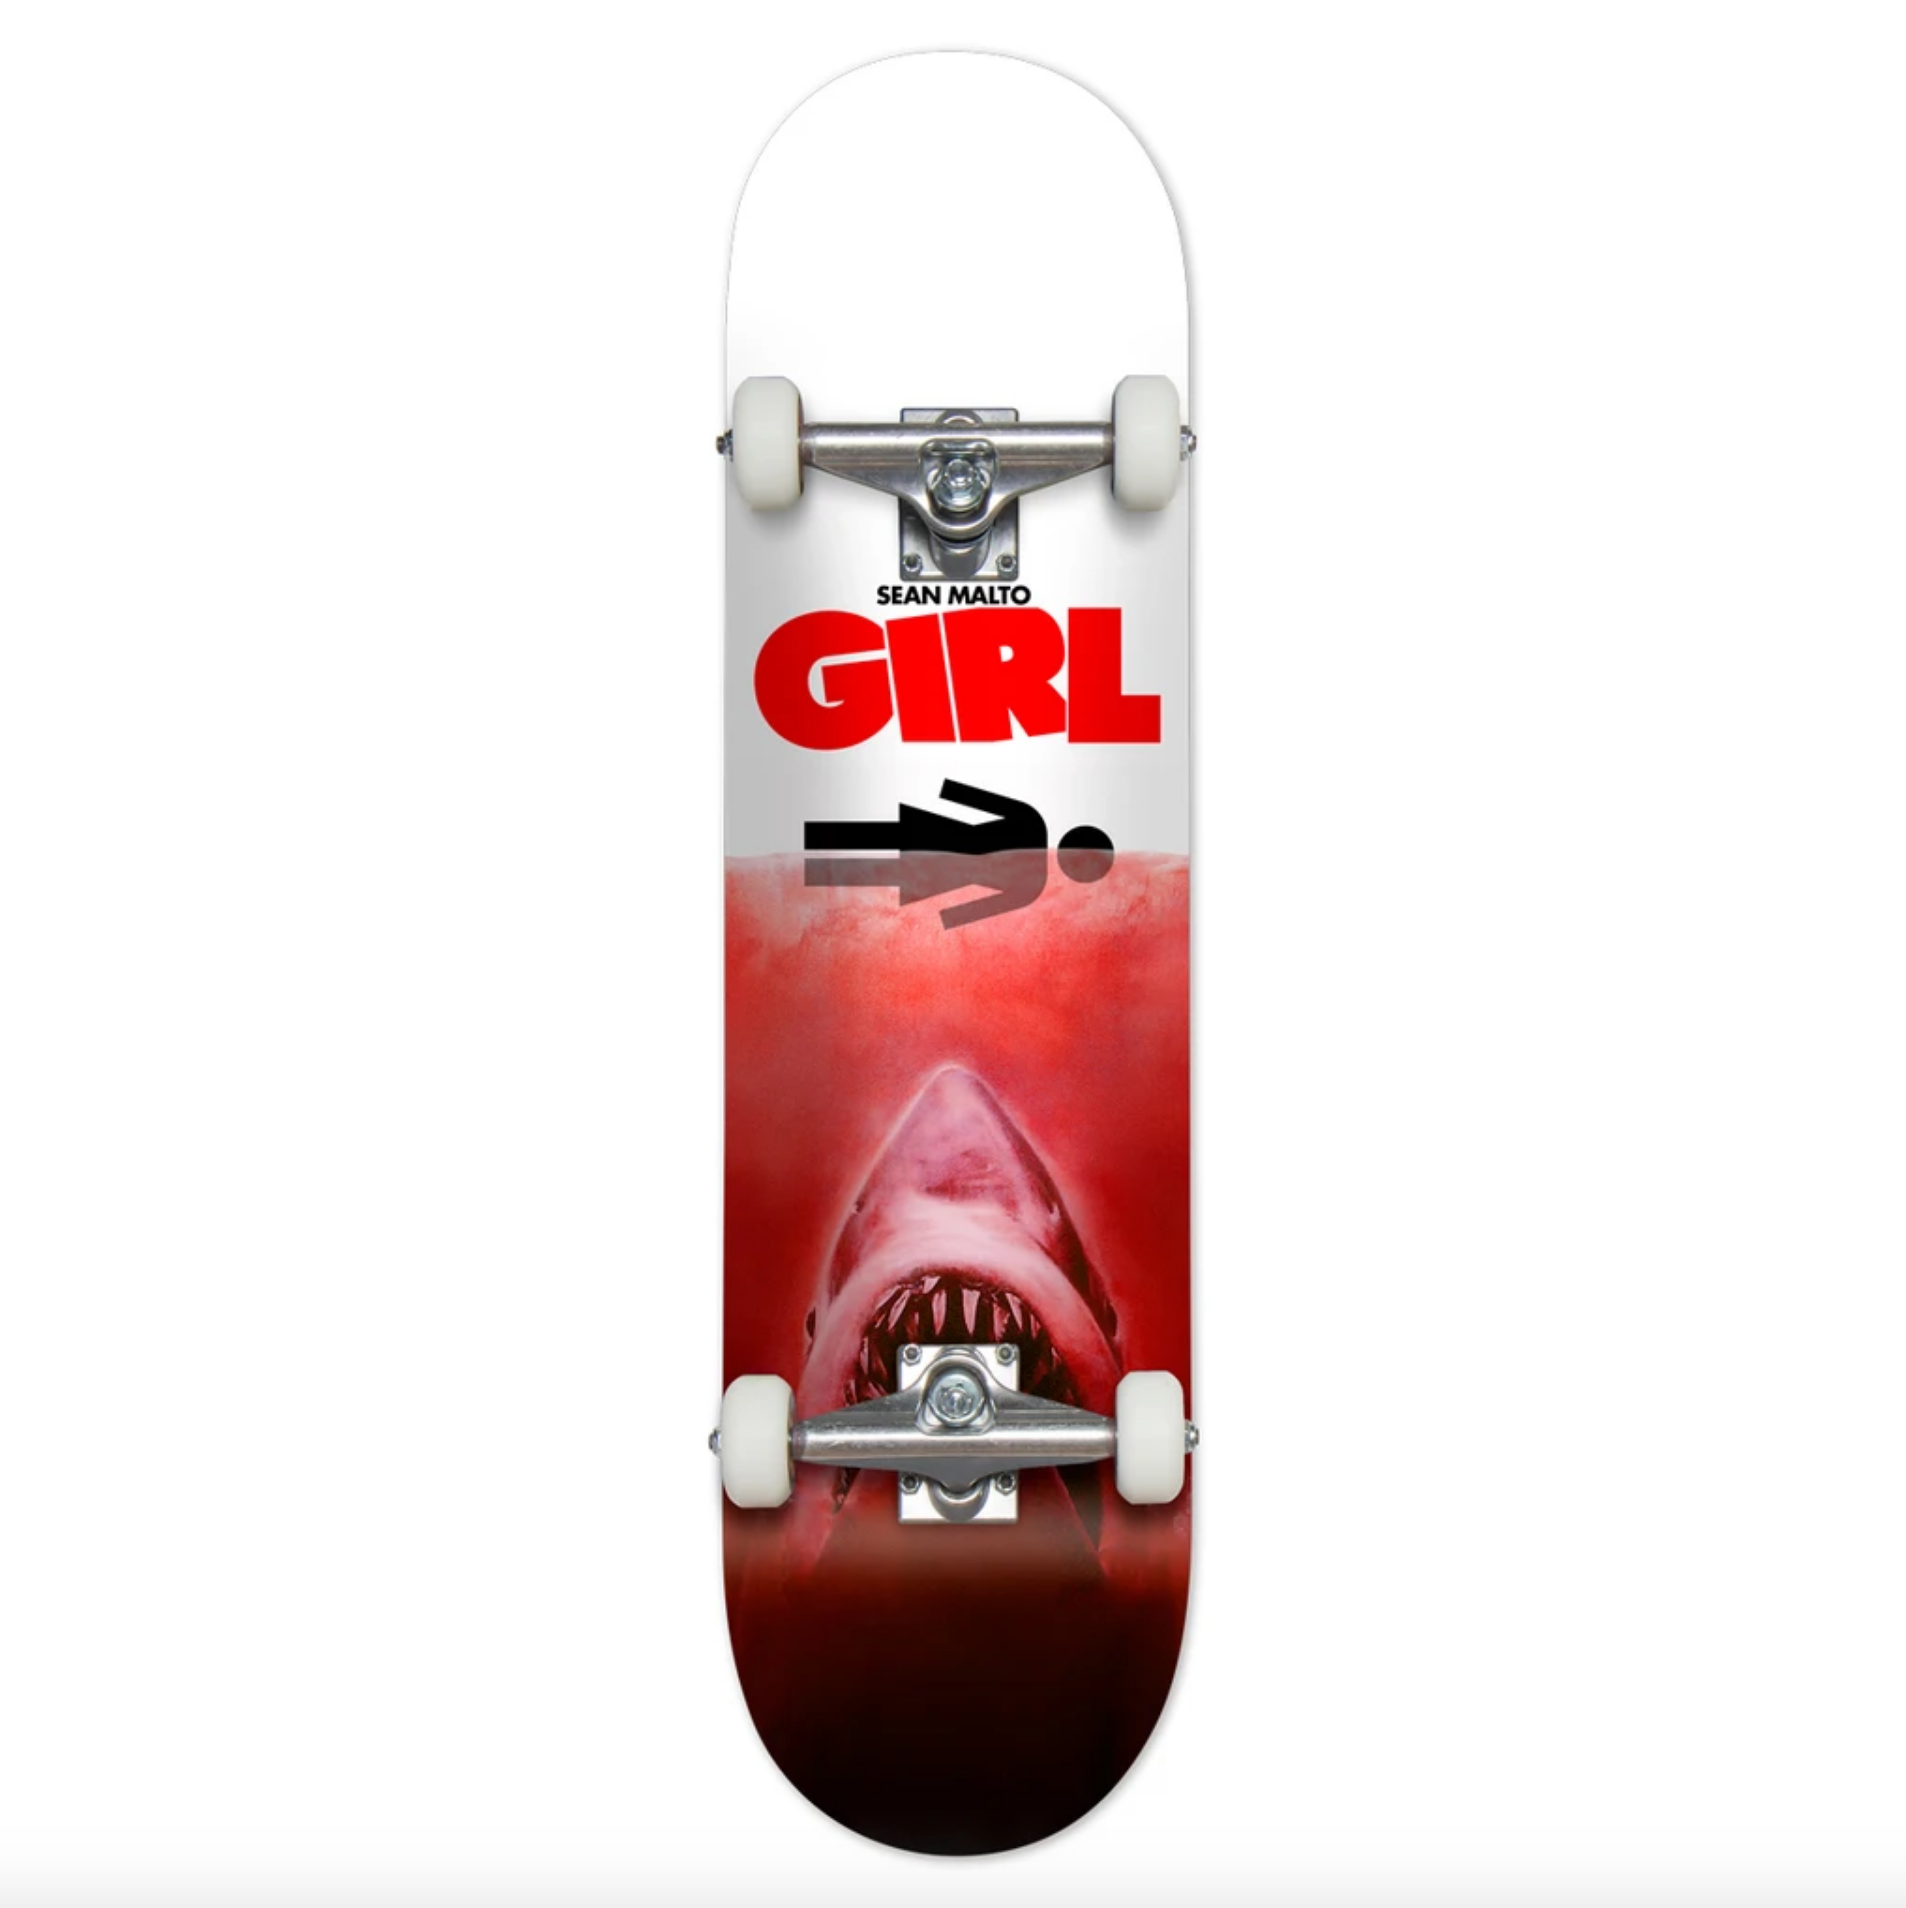 Girl Skateboard Company Malto Shark Attack Red Complete 7.5""